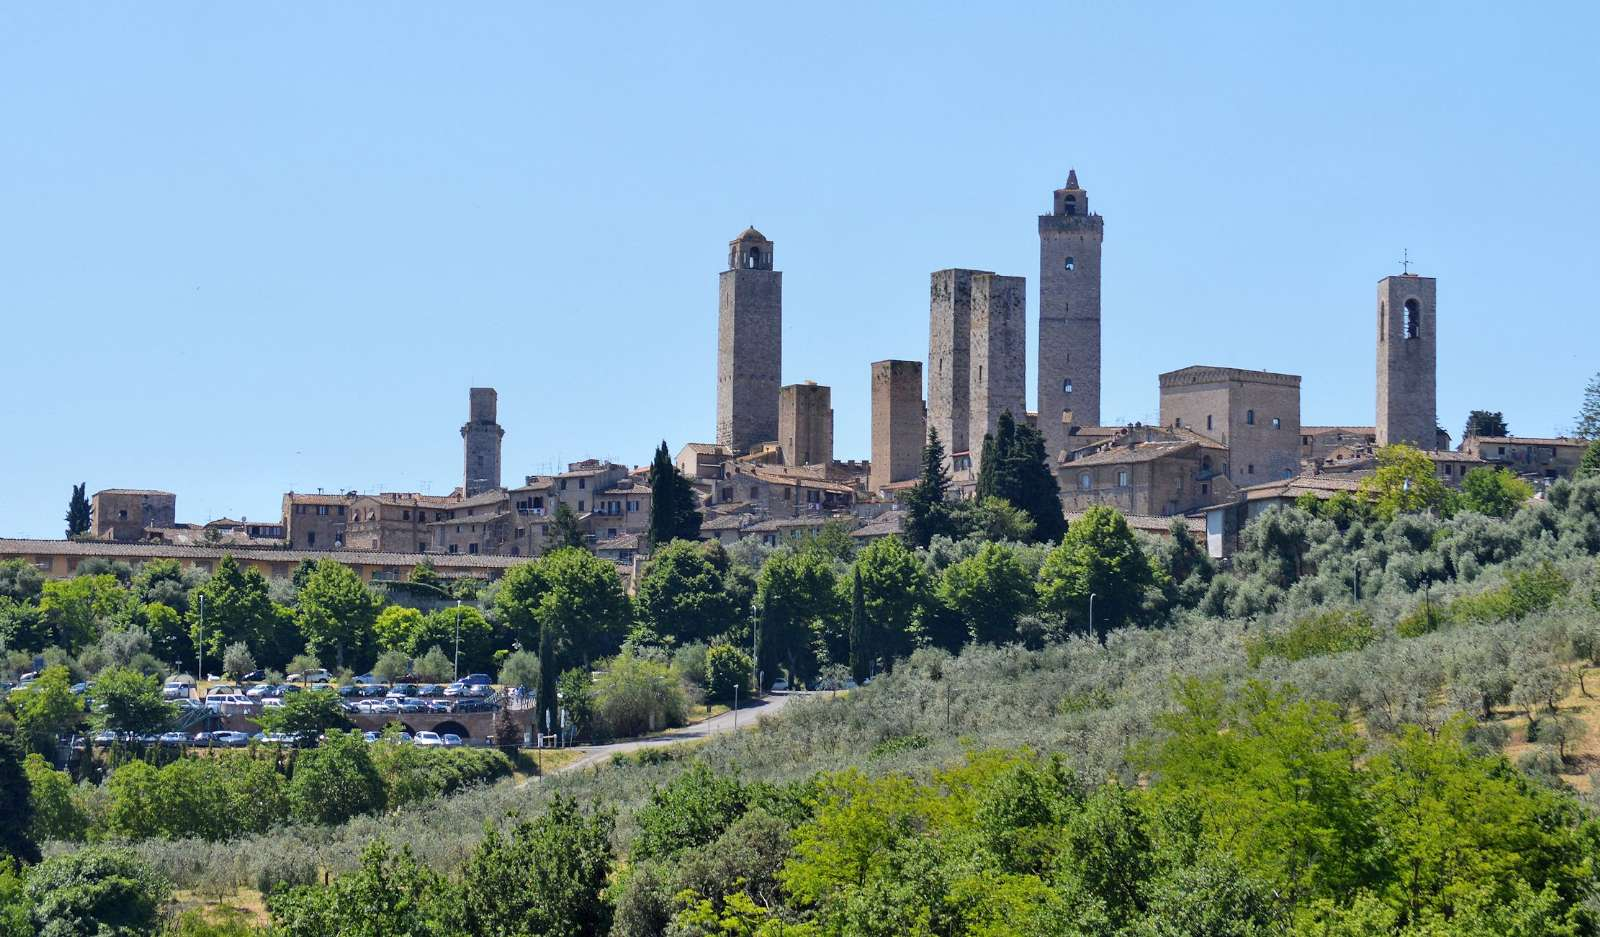 San Gimignano with its beautiful towers